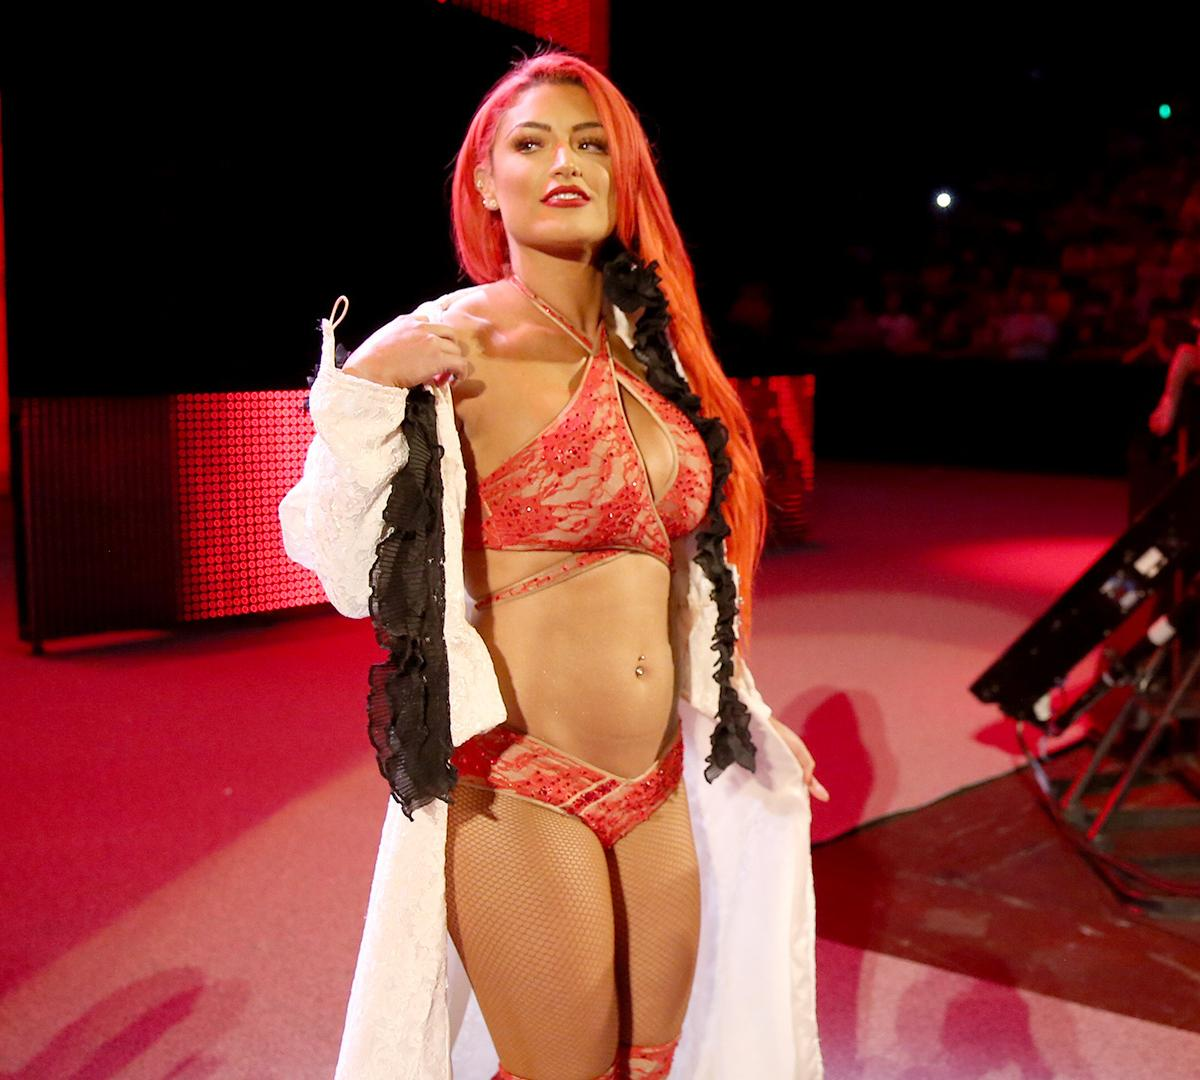 Why was eva marie suspended from wee